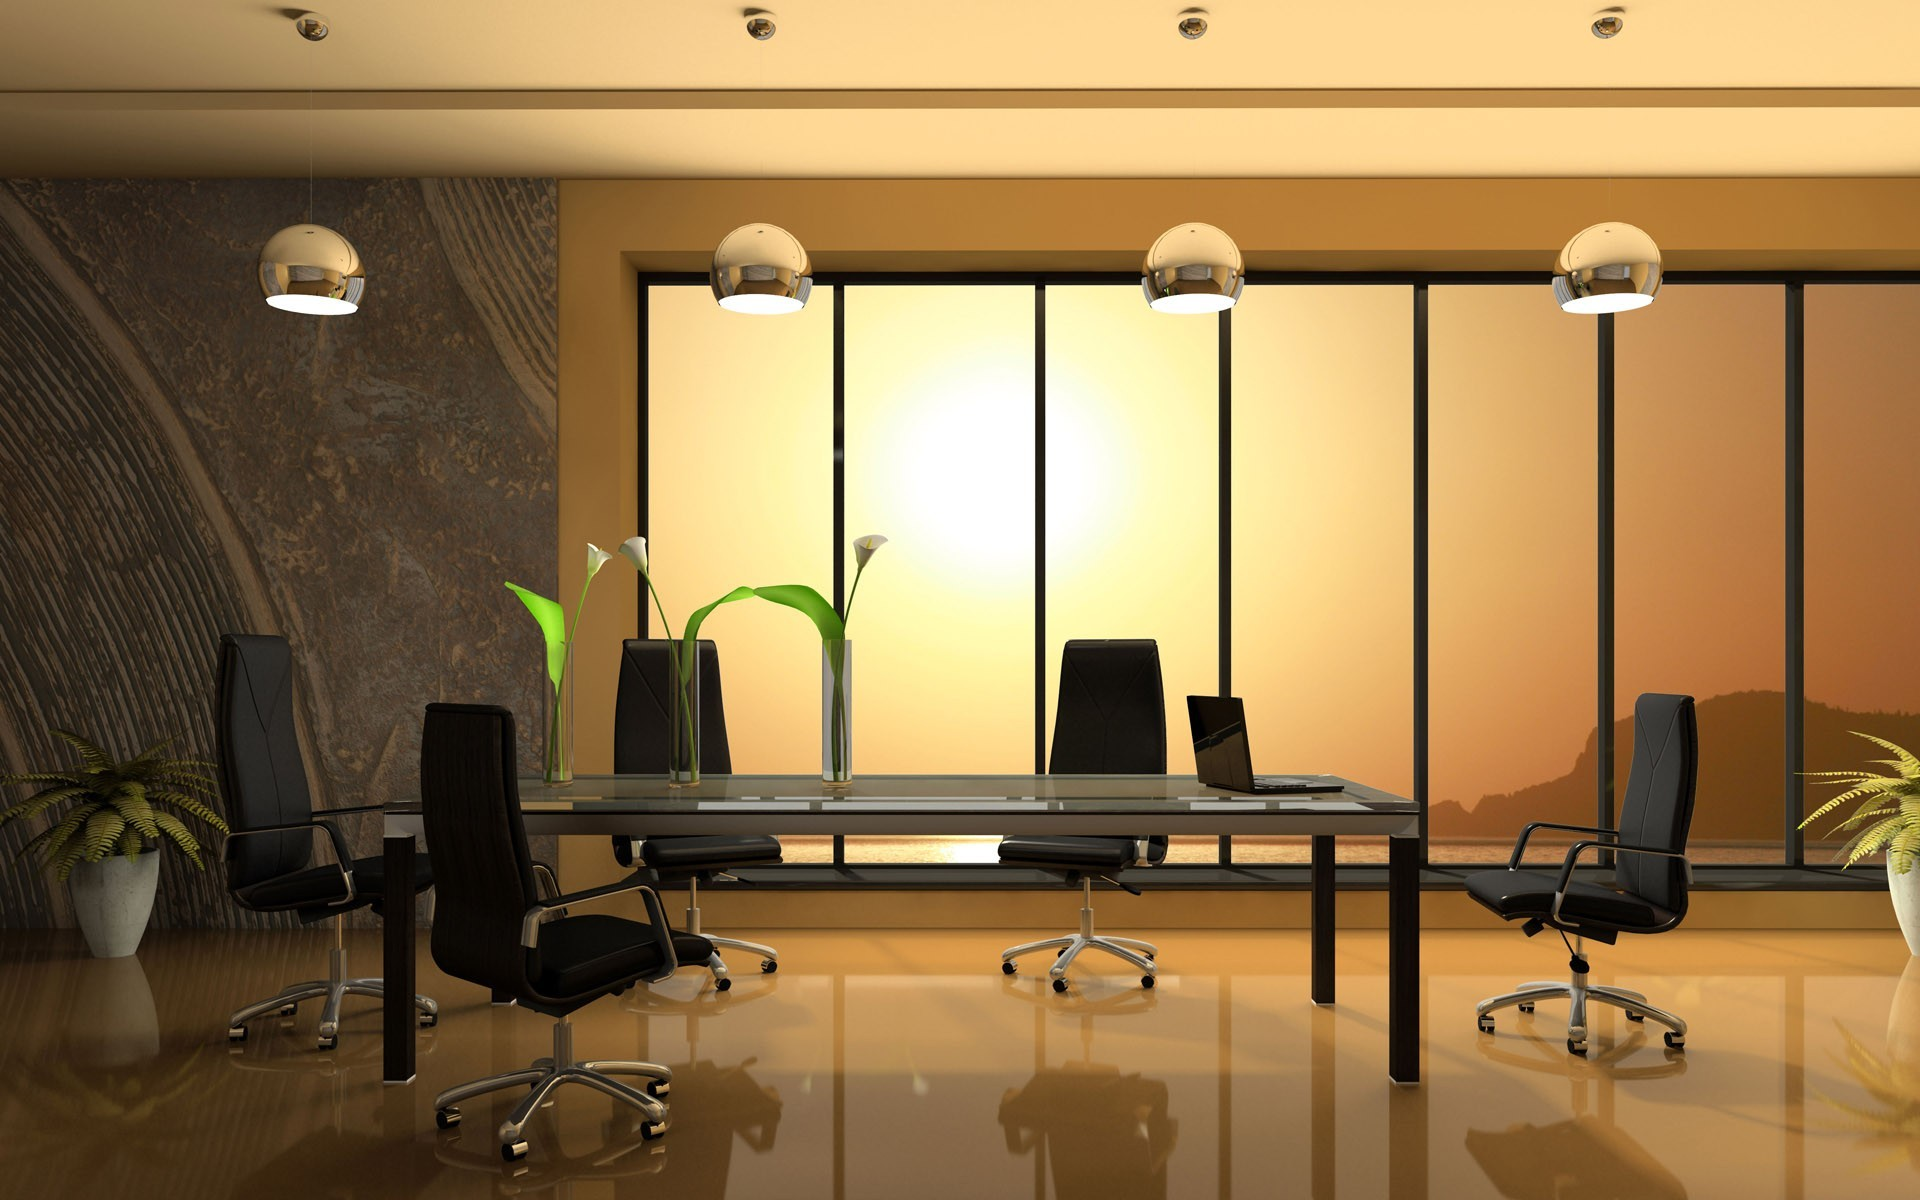 Office interior design wallpaper 138 for Wallpaper home office